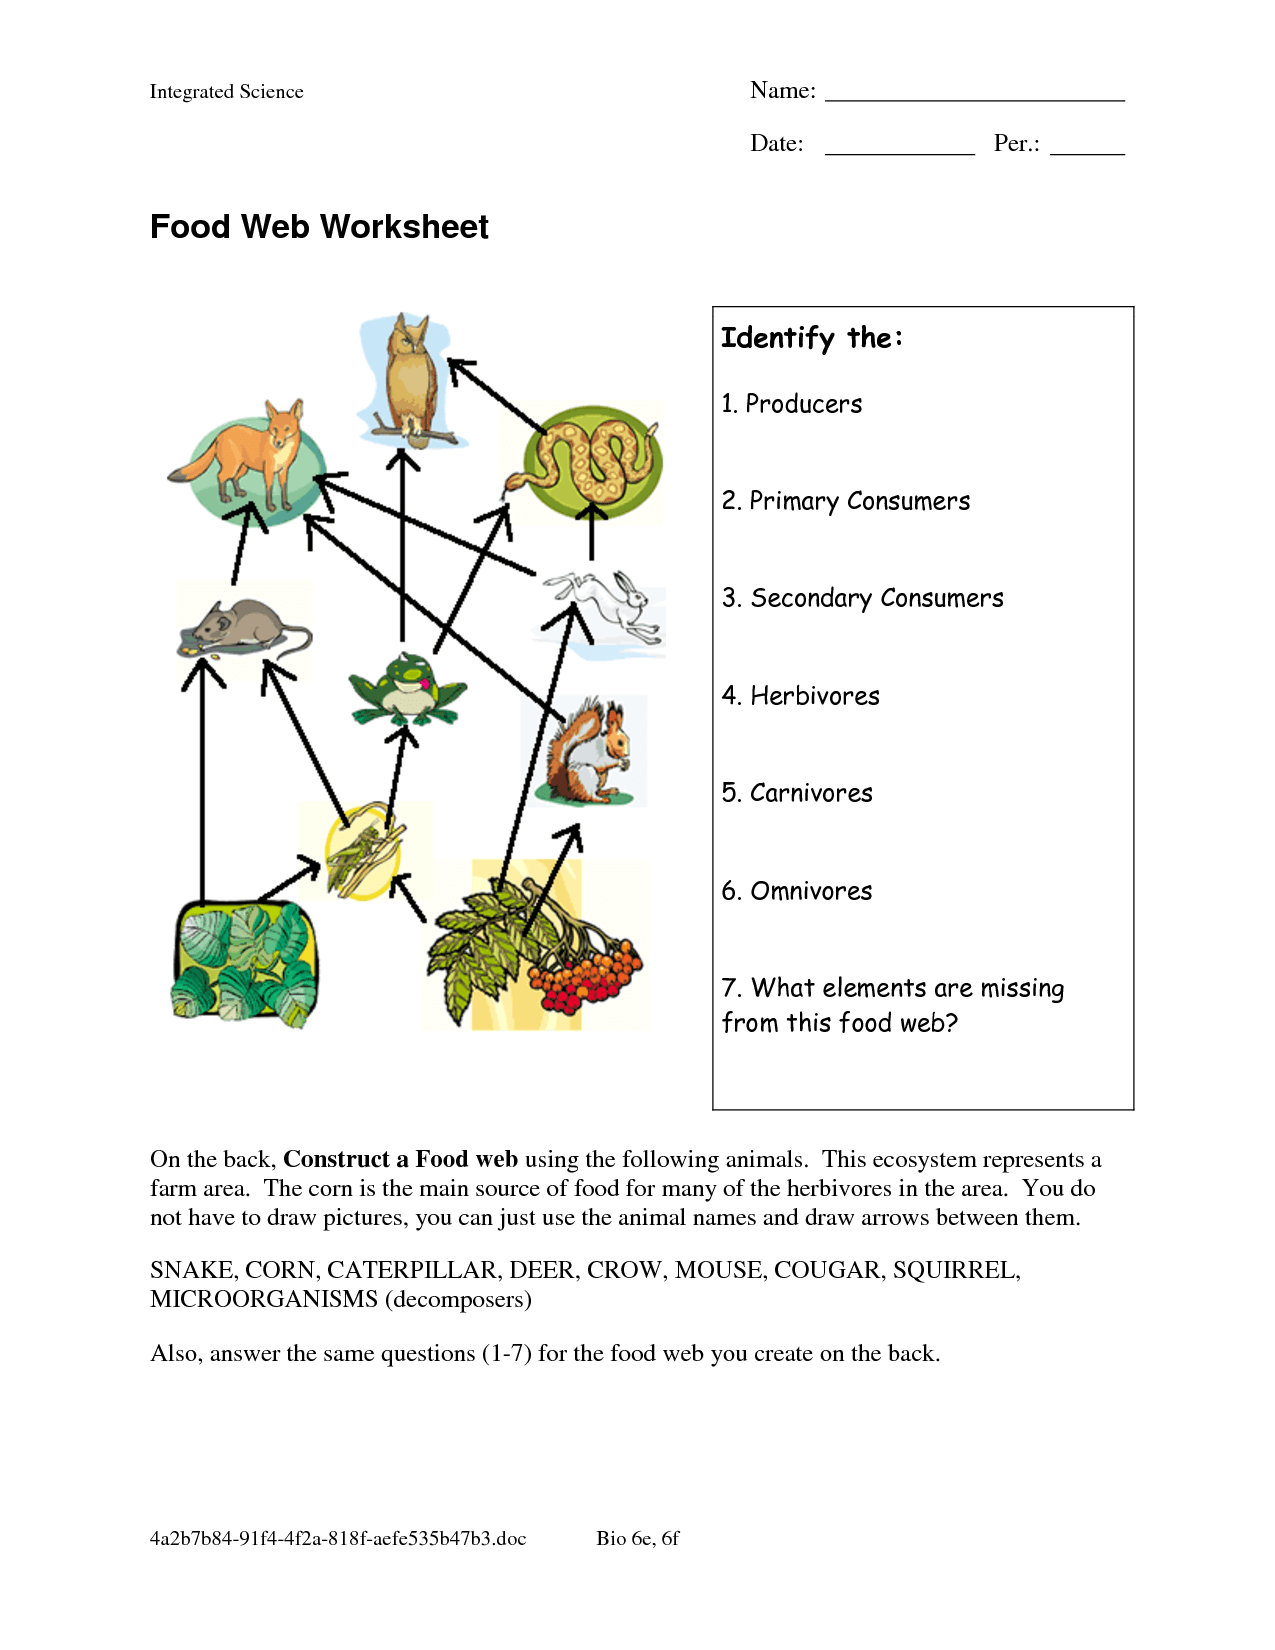 Food Web Worksheets Food Web Worksheet